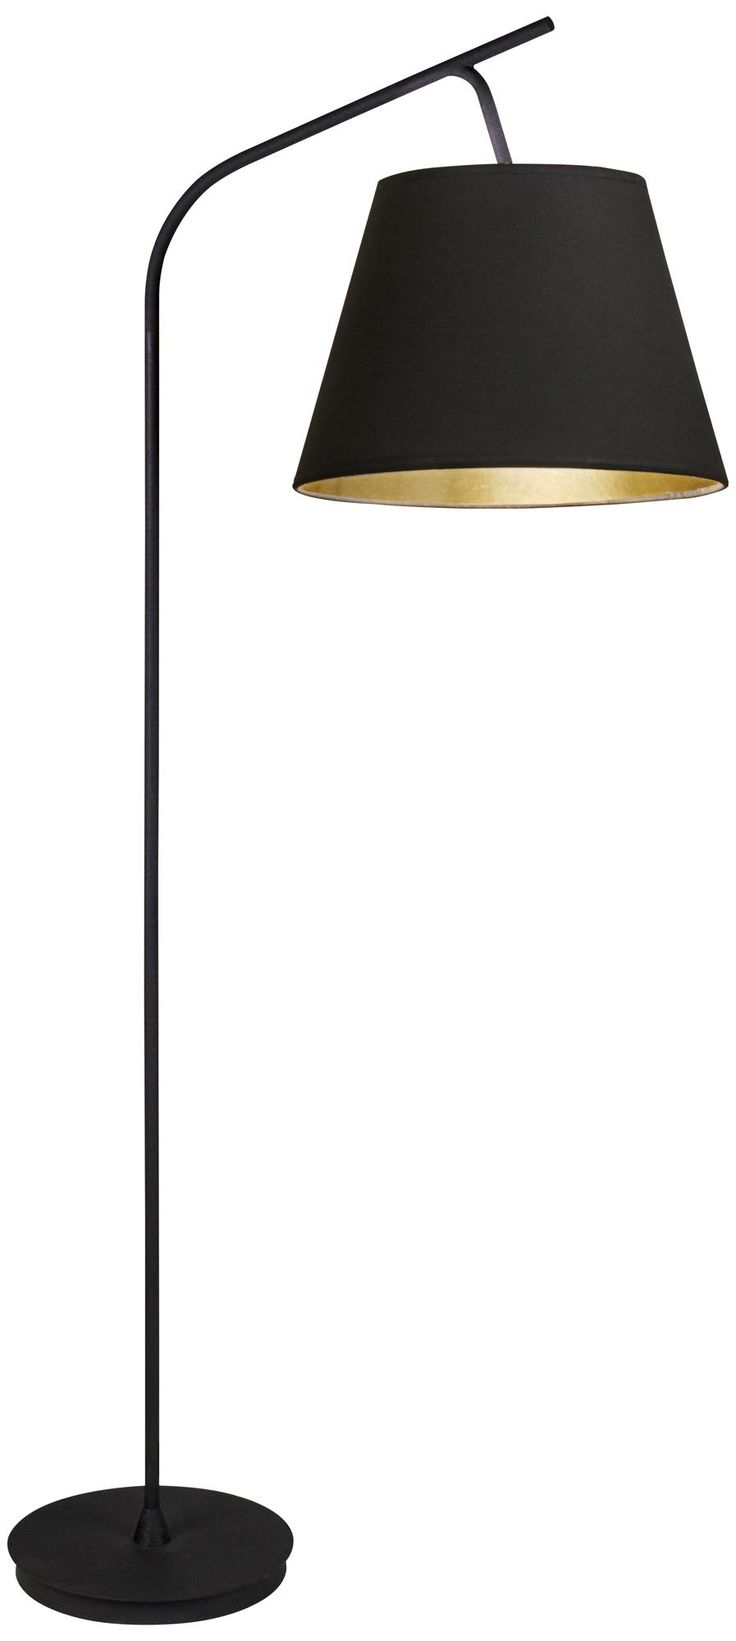 Best 25 arc floor lamps ideas on pinterest arc lamp cheap walker black with black and gold shade arc floor lamp aloadofball Images